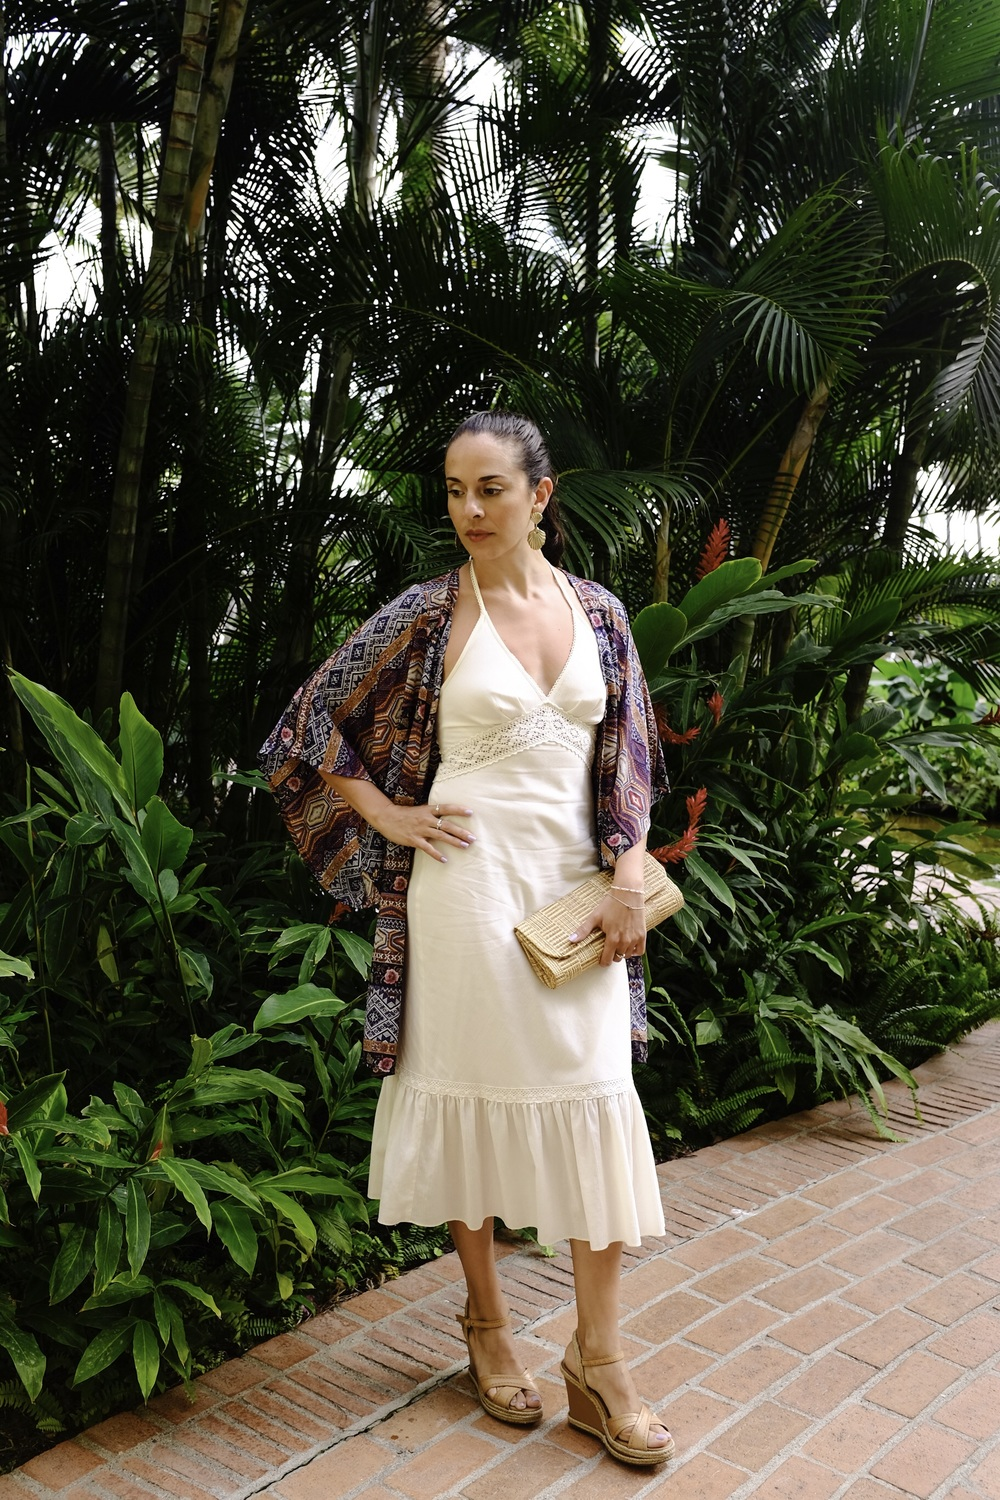 Express  lacy hater dress with  Arezzo  nude wedges, and  Forever 21  boho robe. Clutch and earrings from a small boutique in Brazil. Photography by  Francisco Graciano .